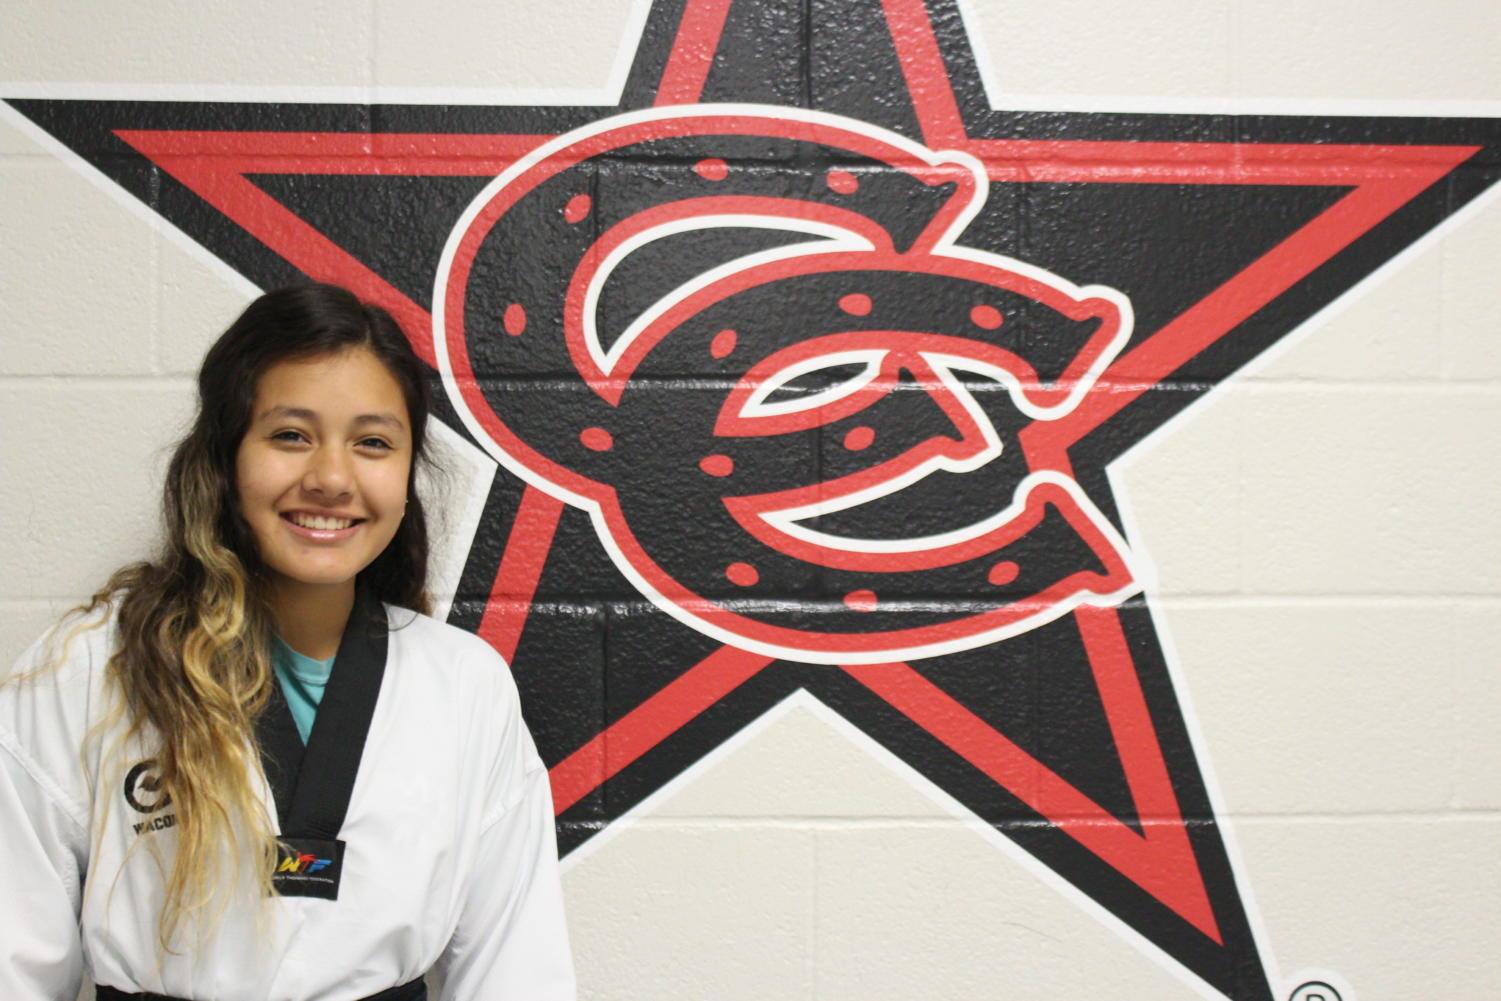 Coppell High School sophomore Jessica Hayakawa is a highly skilled taekwondo athlete shown through Hayakawa's black belt. Hayakawa was offered a spot on the Mexico's National Taekwondo Team which she has now joined.